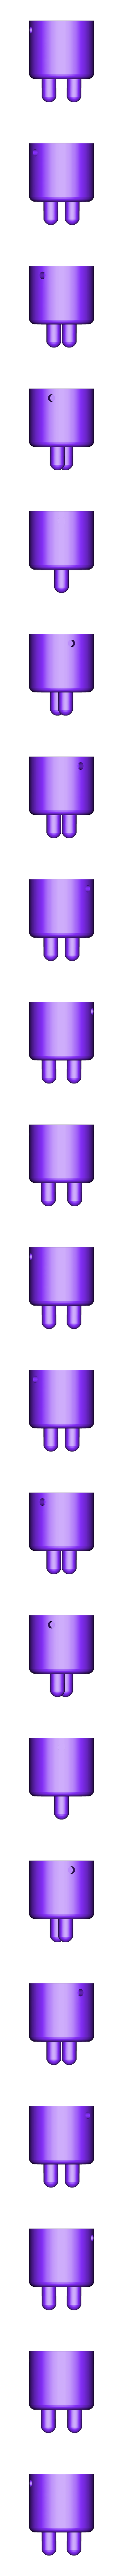 Bugdroid_Body.stl Download free STL file Bugdroid - Android Mascot • 3D printing object, ChaosCoreTech